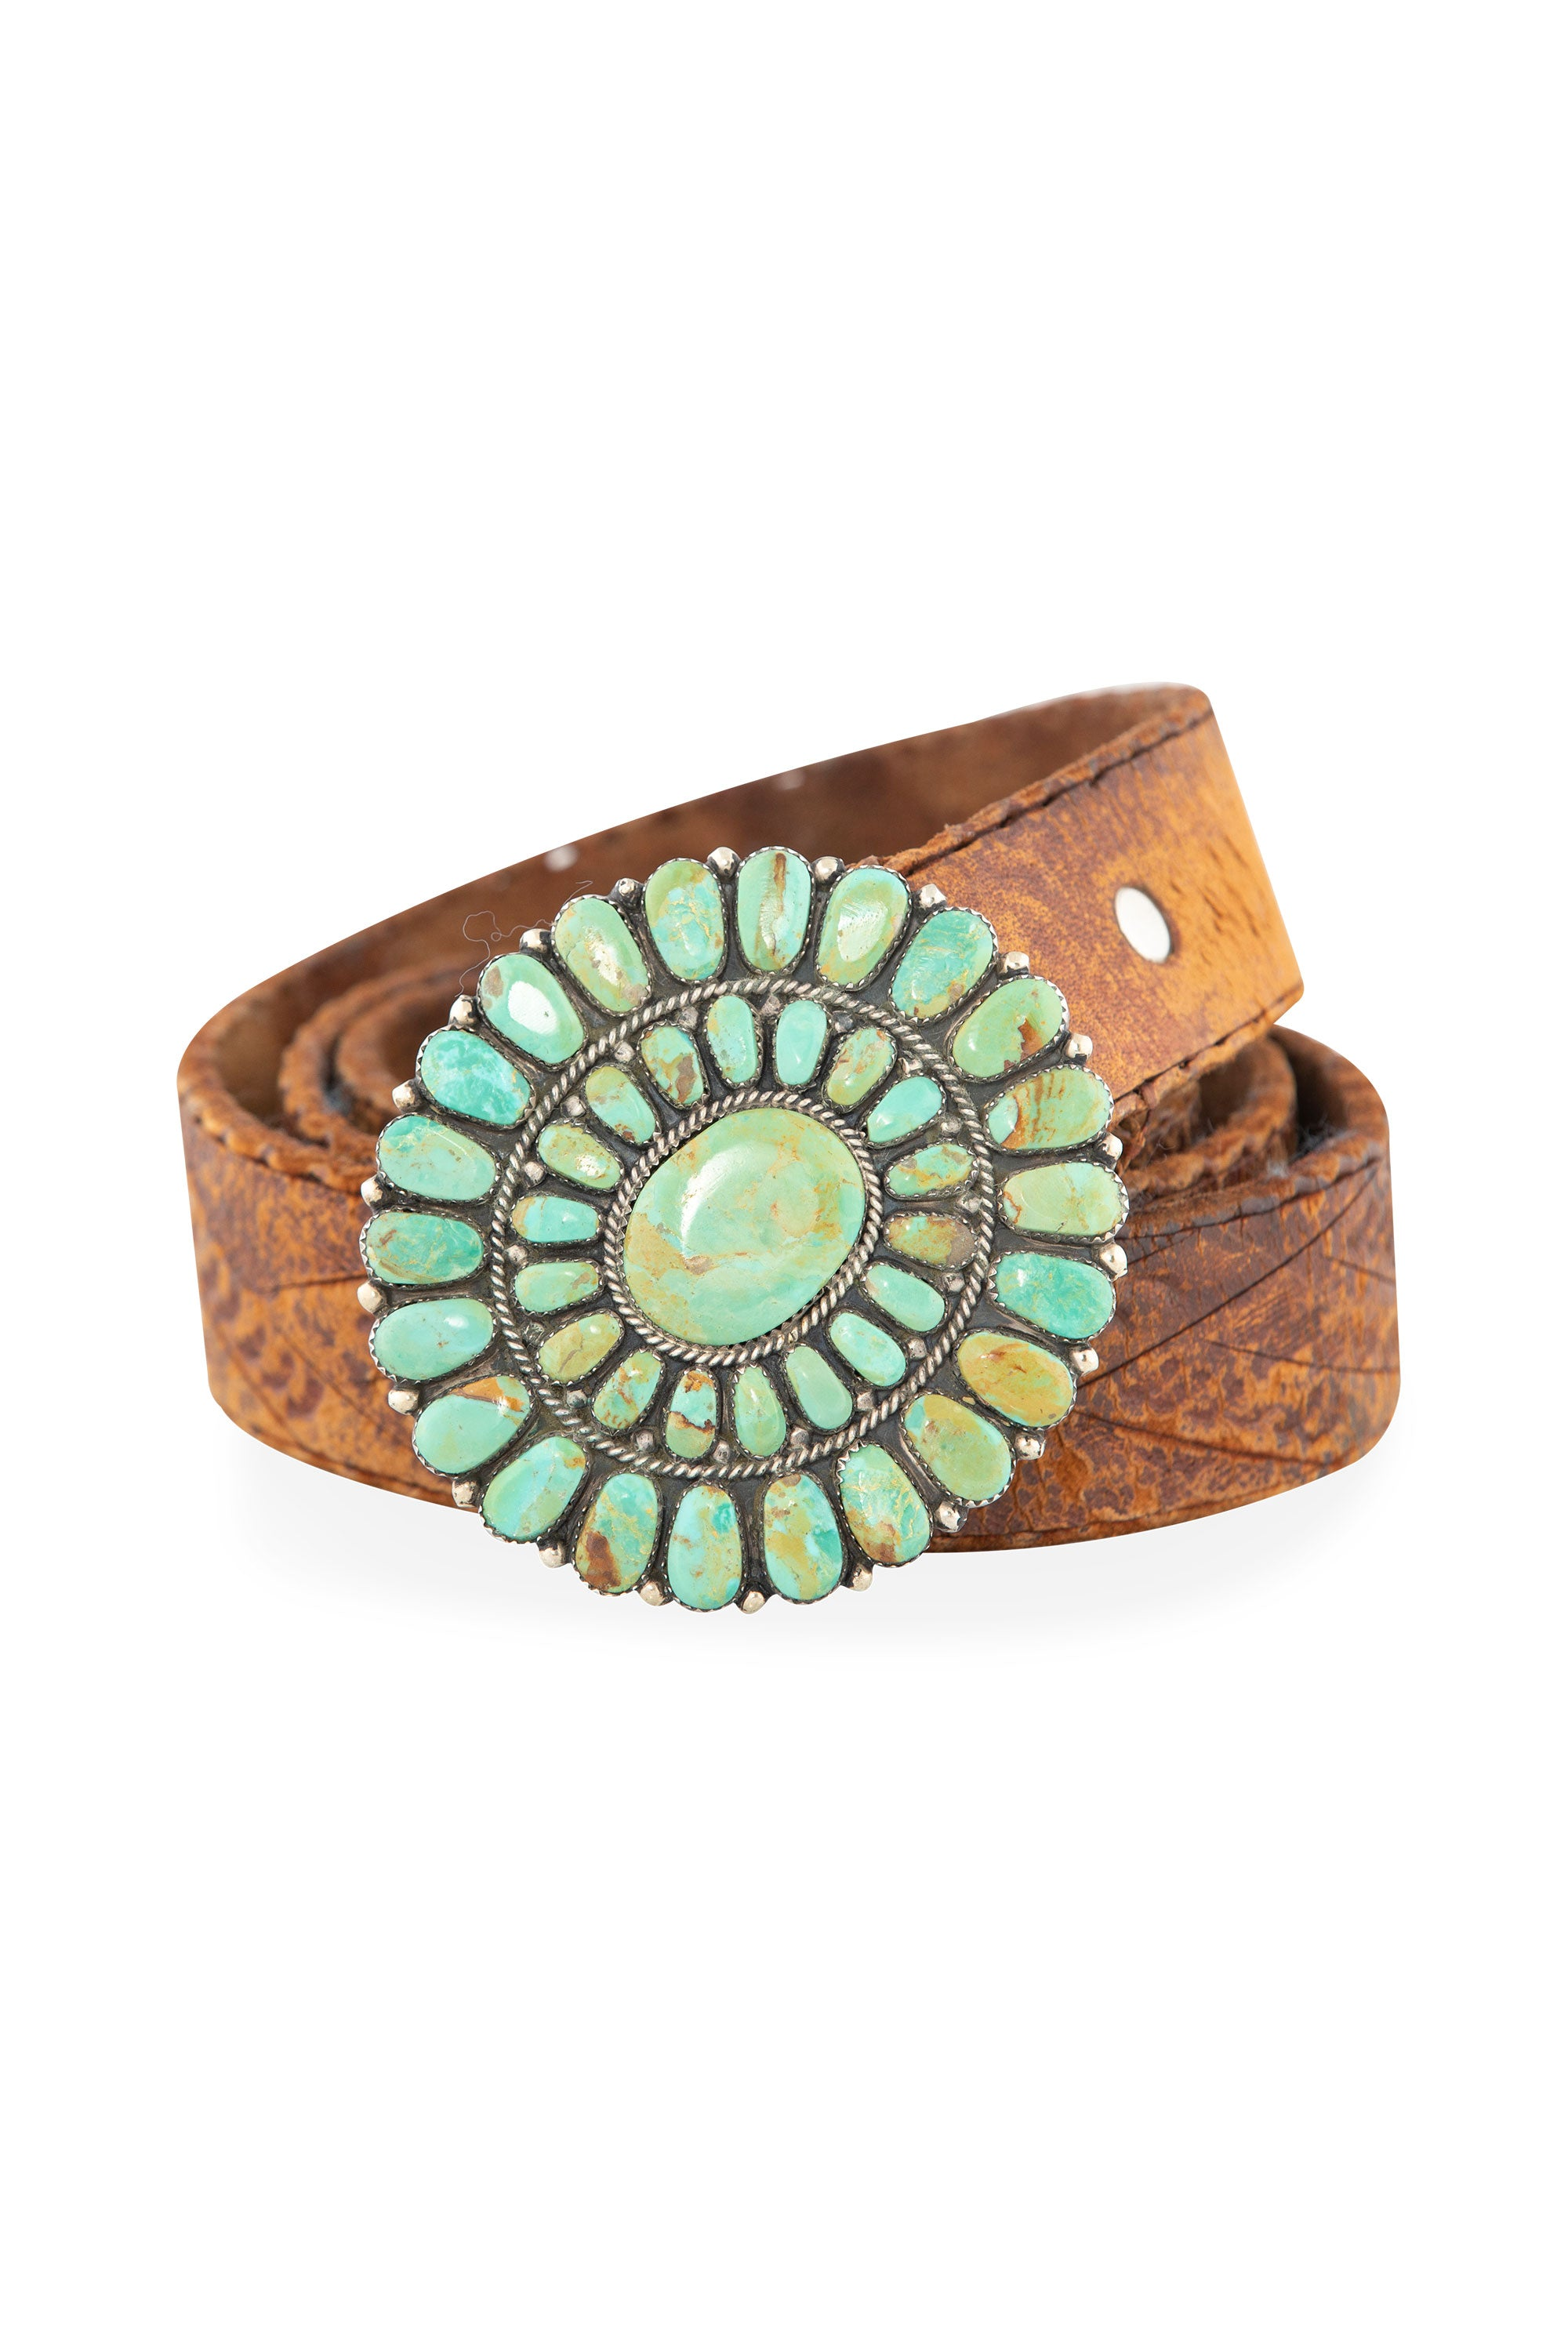 Belt, Buckle, Turquoise, Cluster, Tooled Leather Strap, Vintage, 662